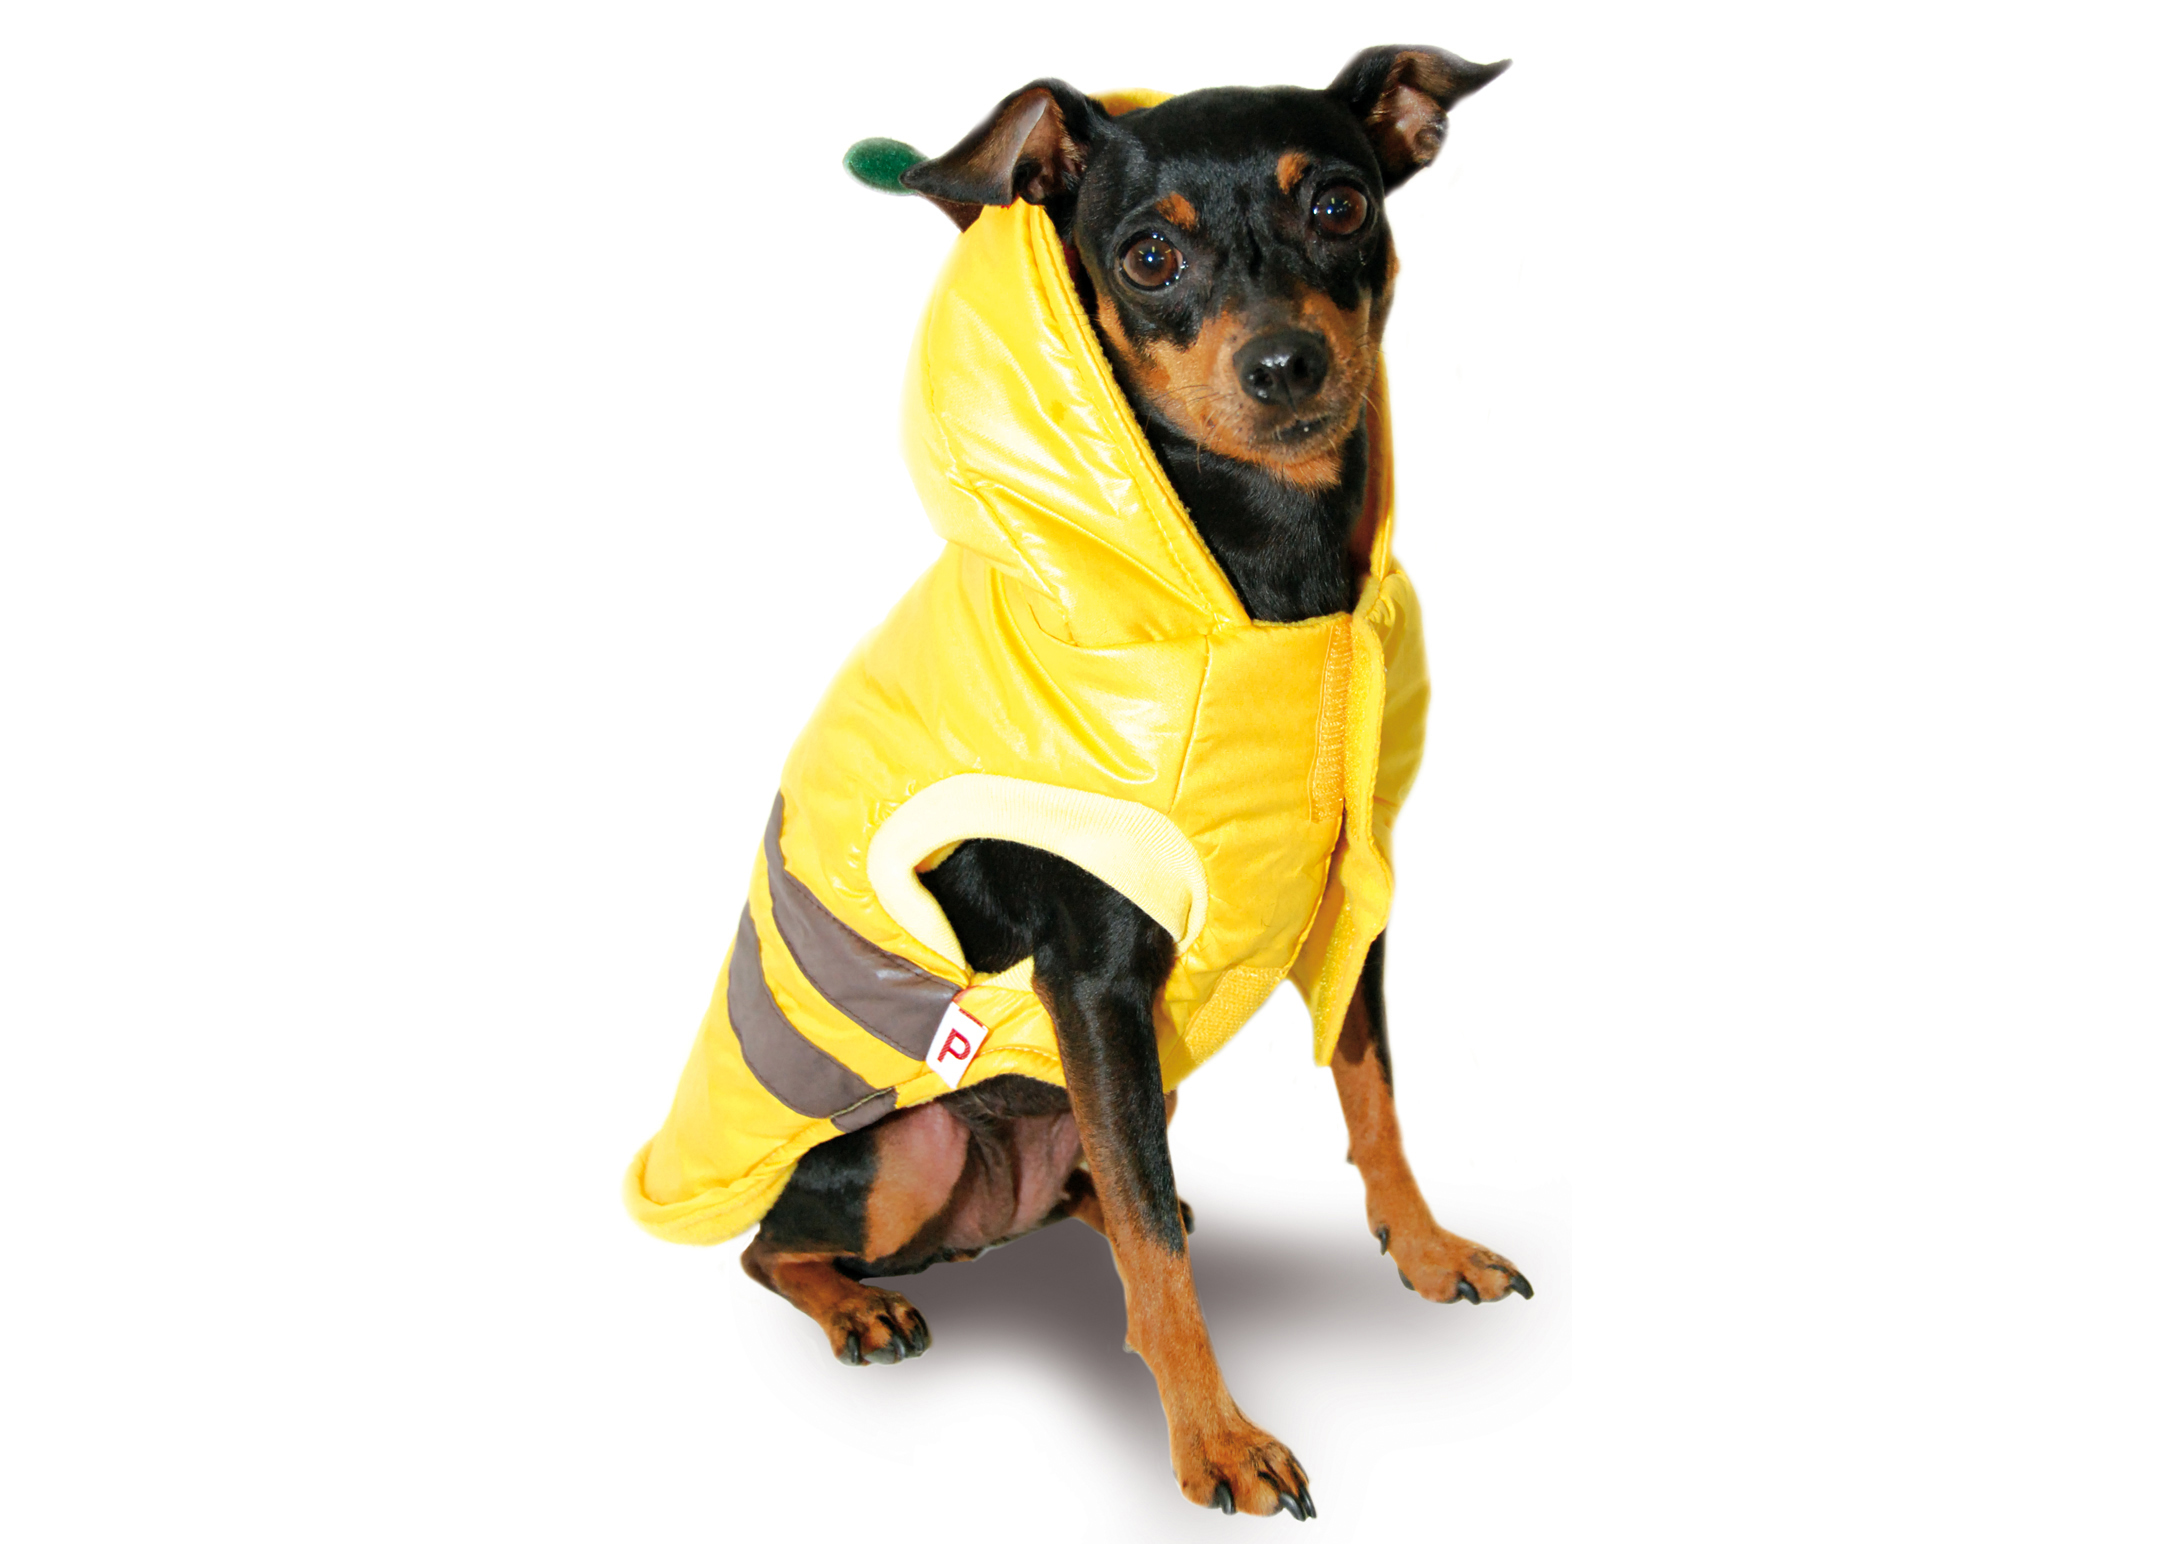 Max+Co Bee Jacket Yellow Attire For Dogs